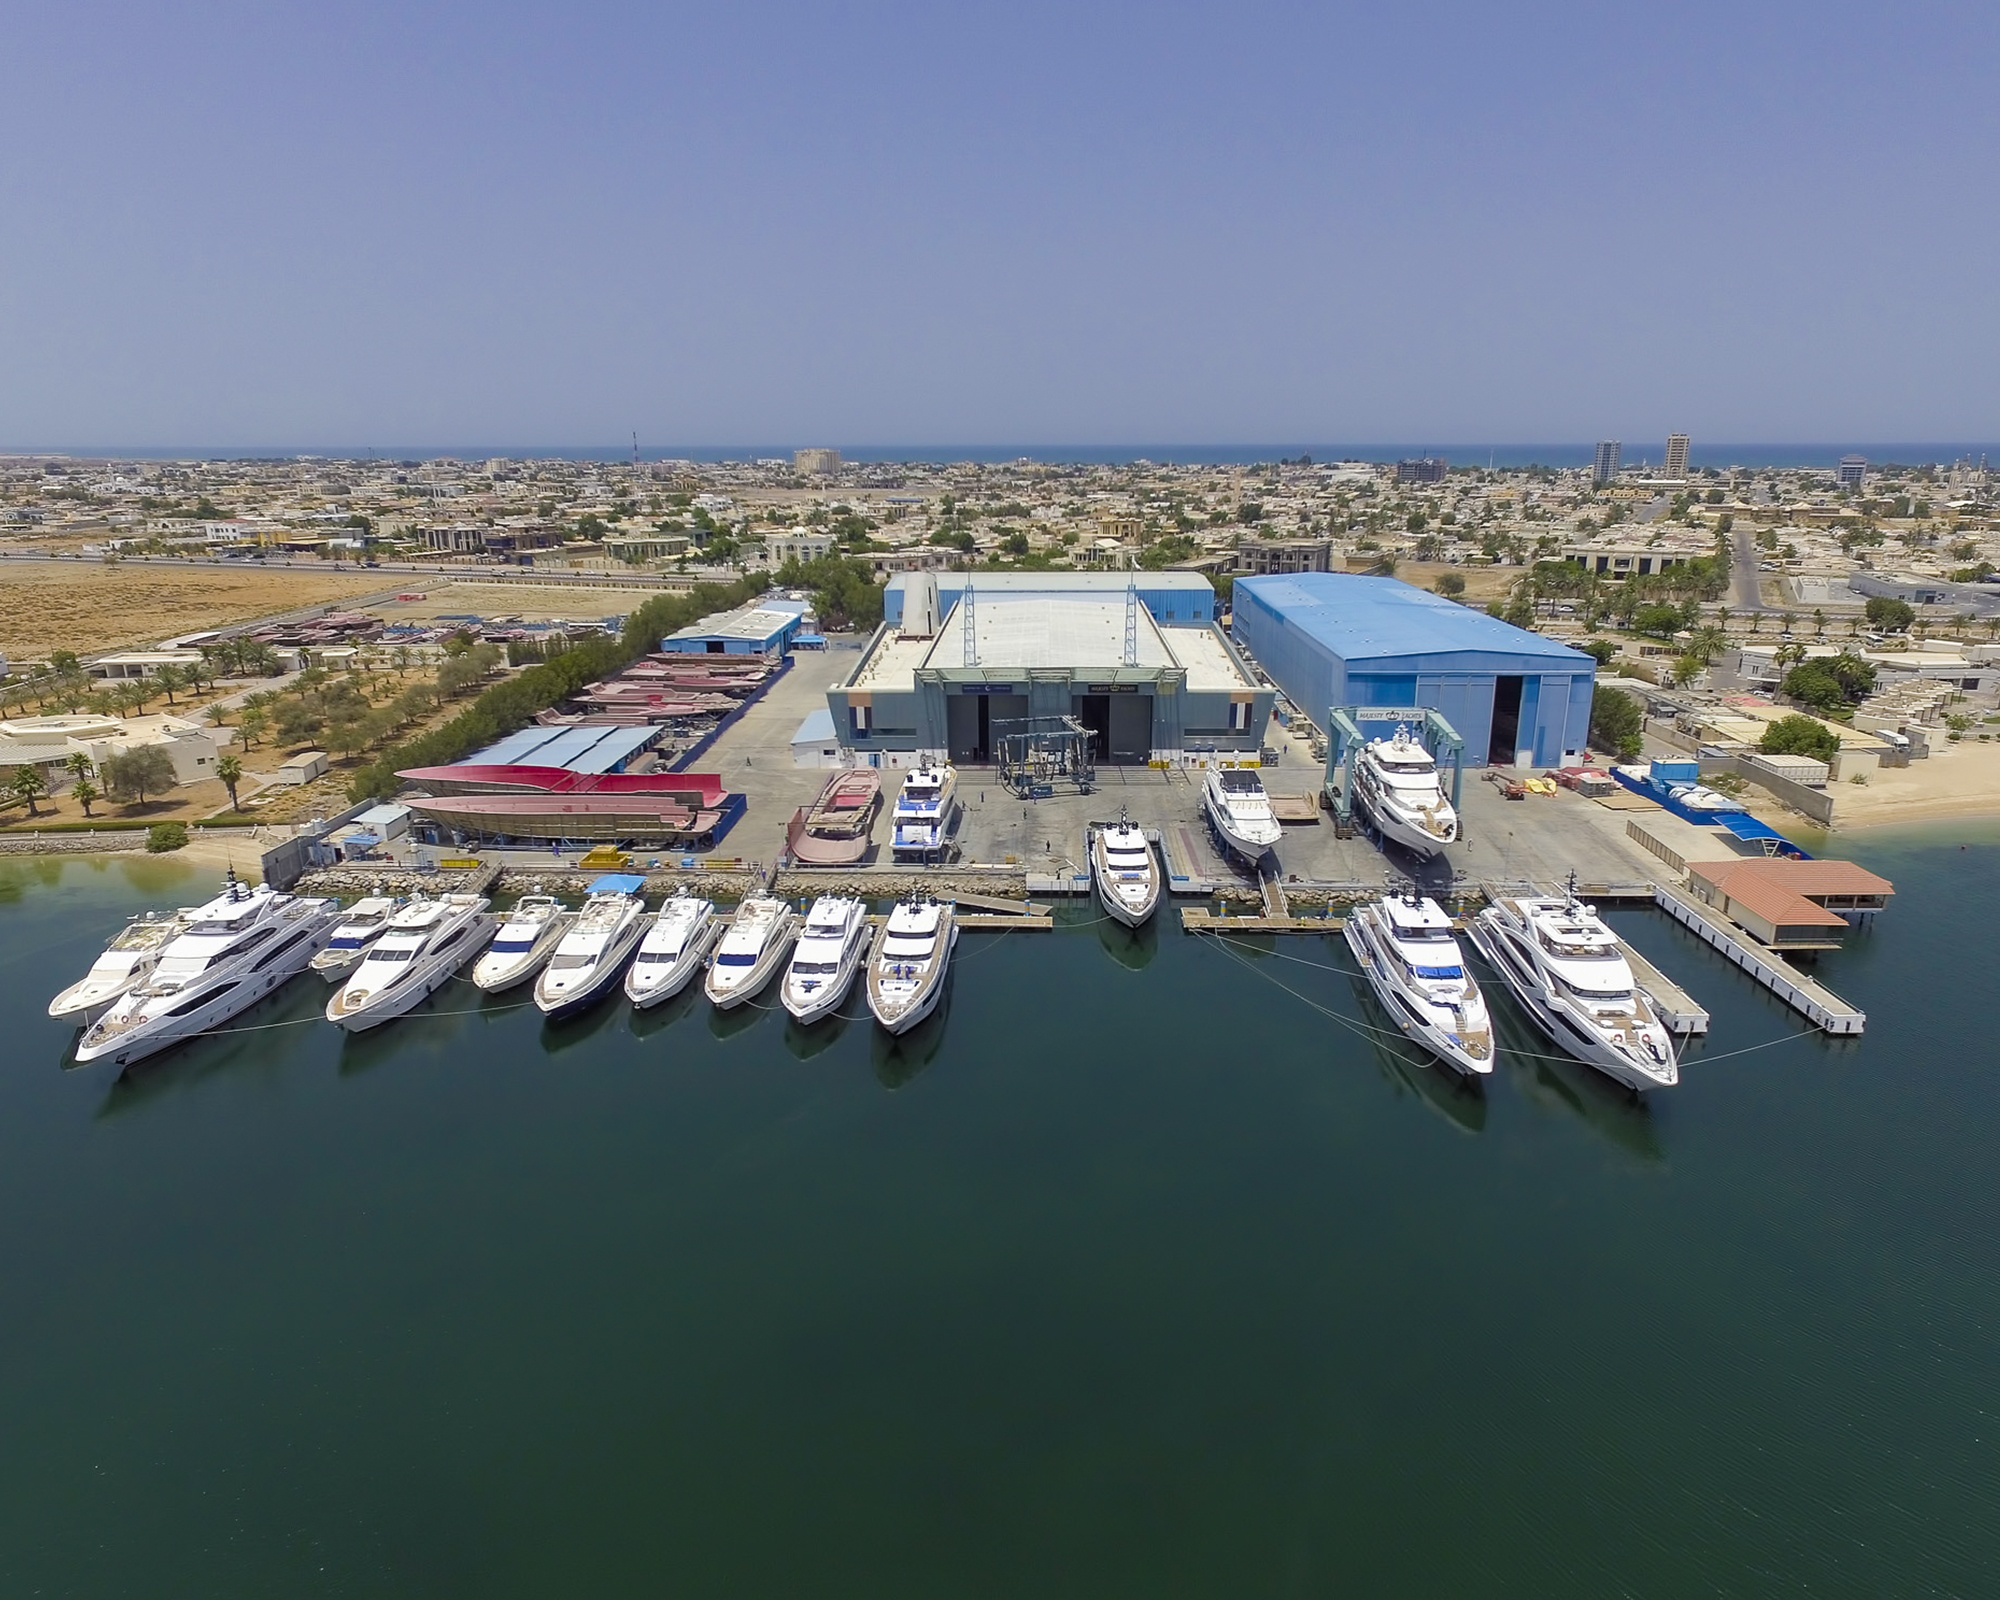 Gulf Craft climbs to 7th position as Superyacht Shipyard